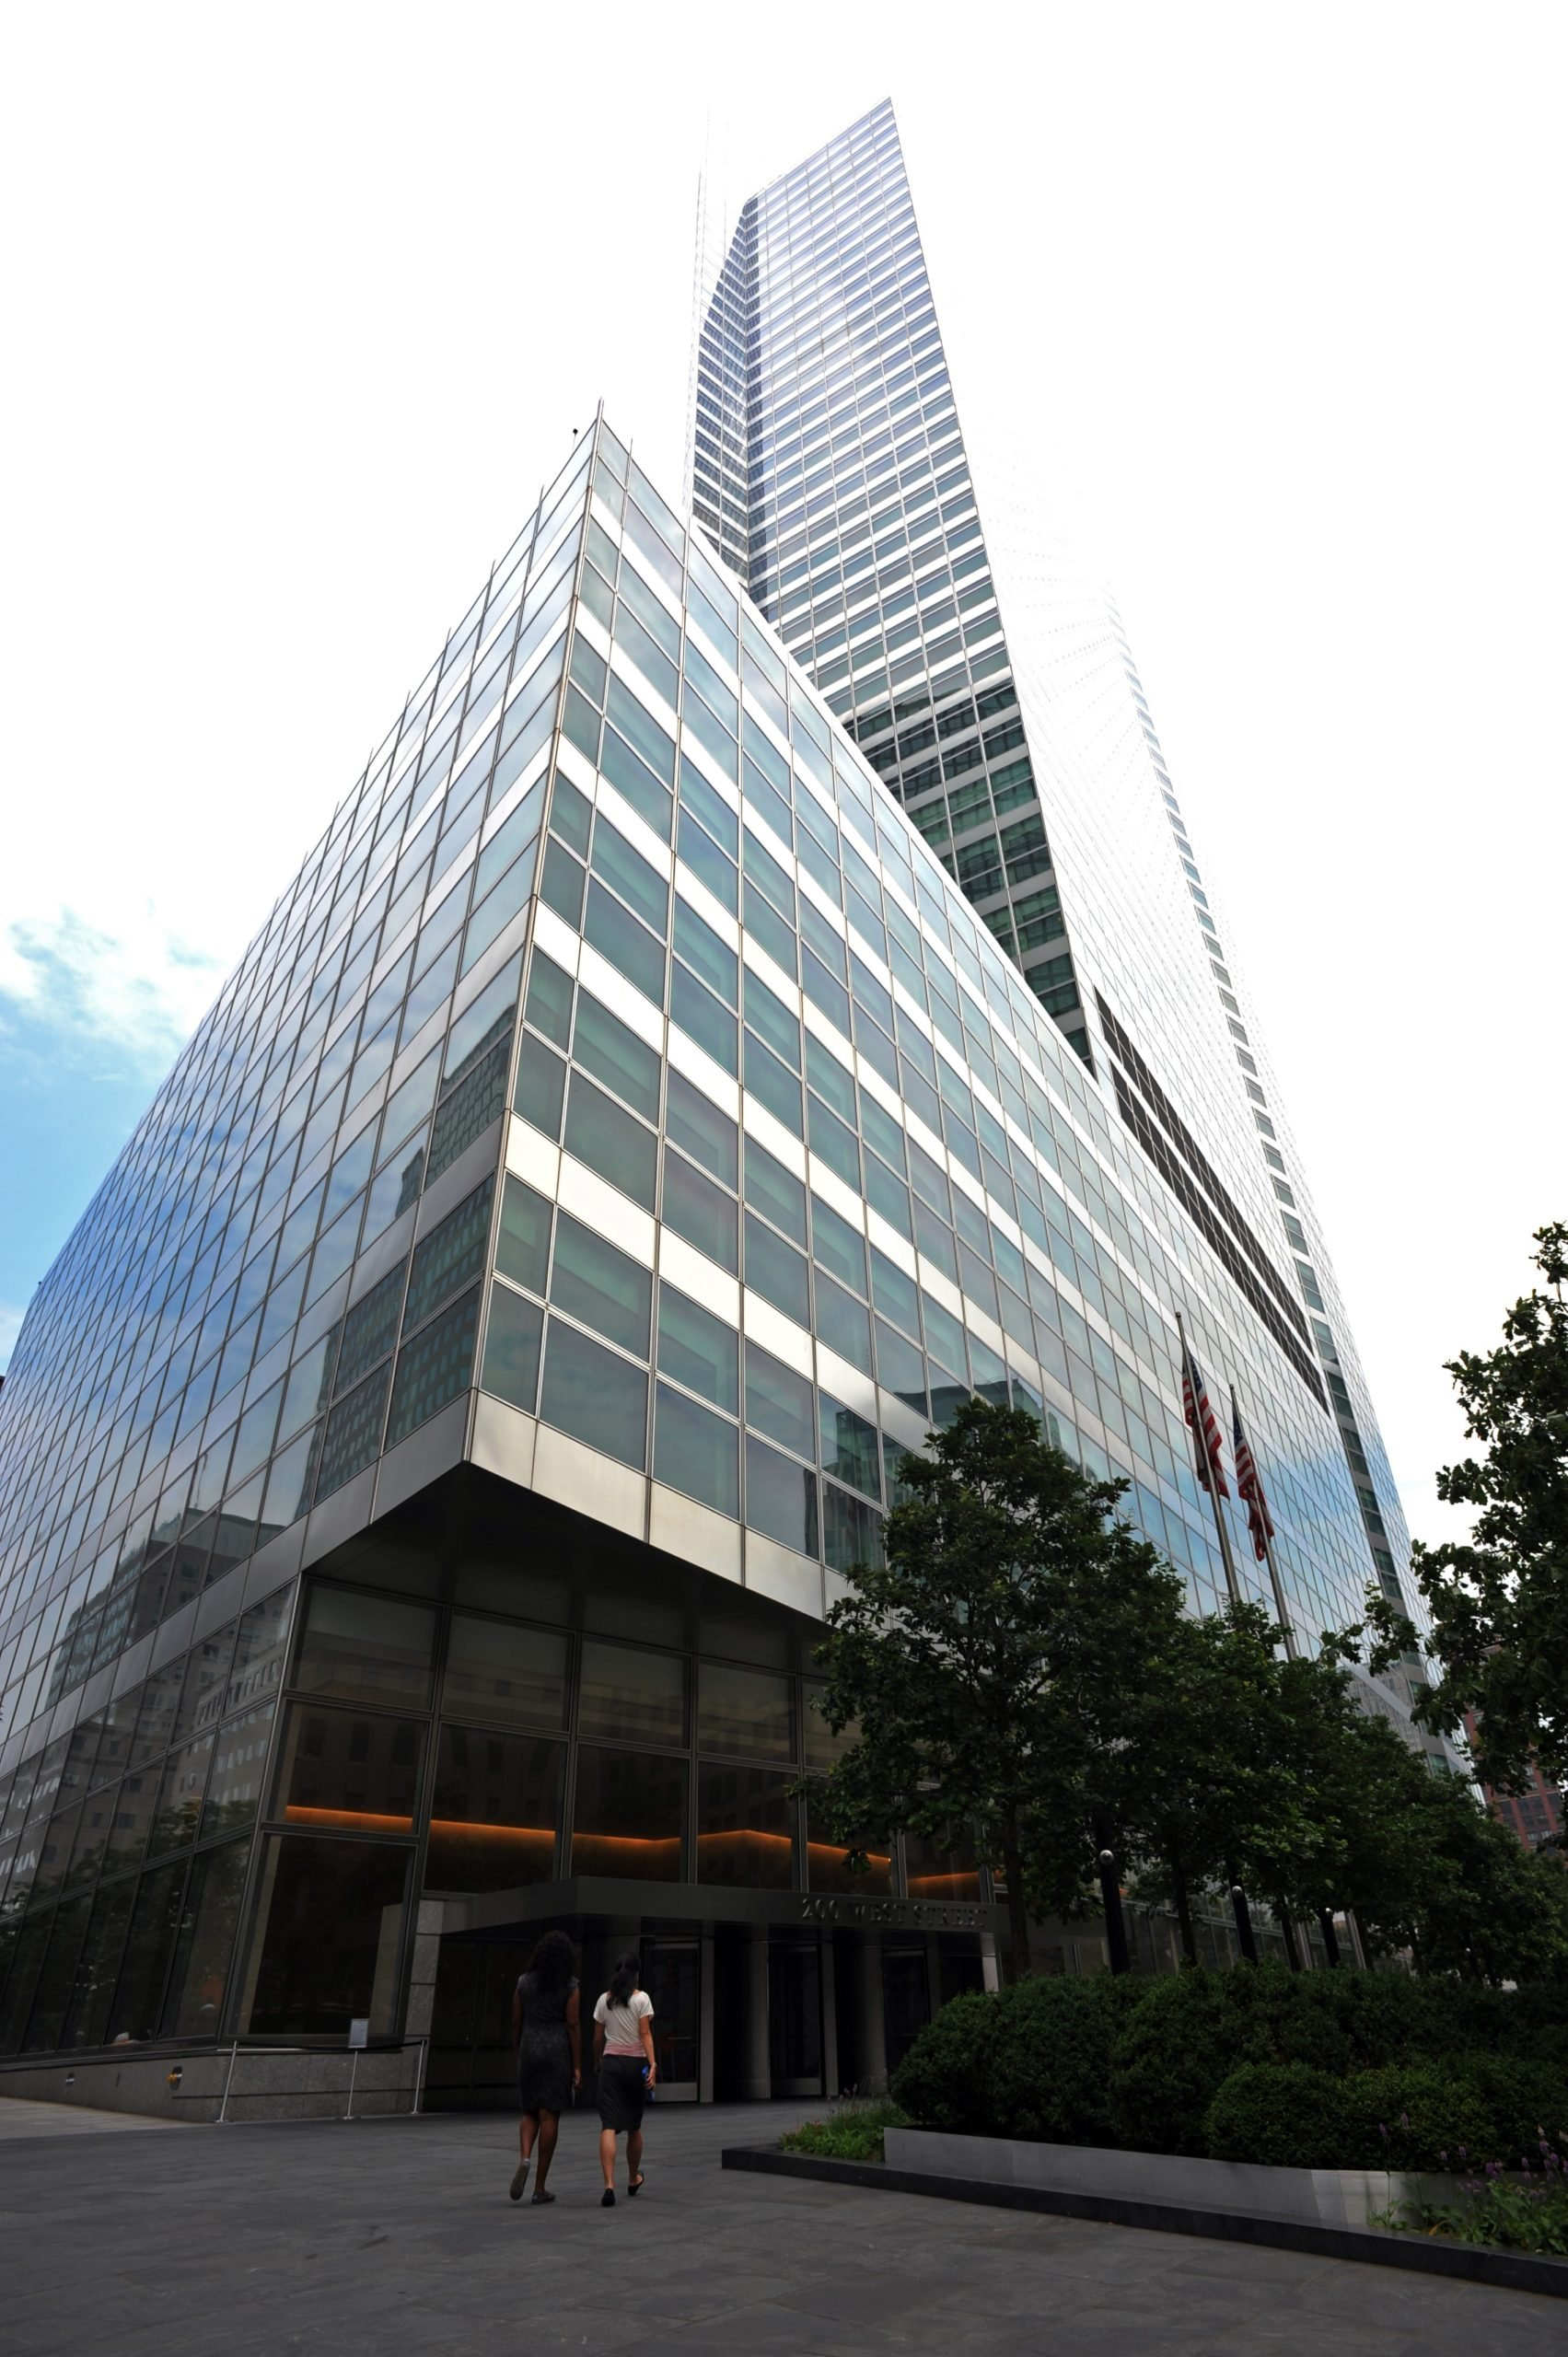 The headquarters of investment banking and securities firm Goldman Sachs in lower Manhattan on June 22, 2012 in New York.